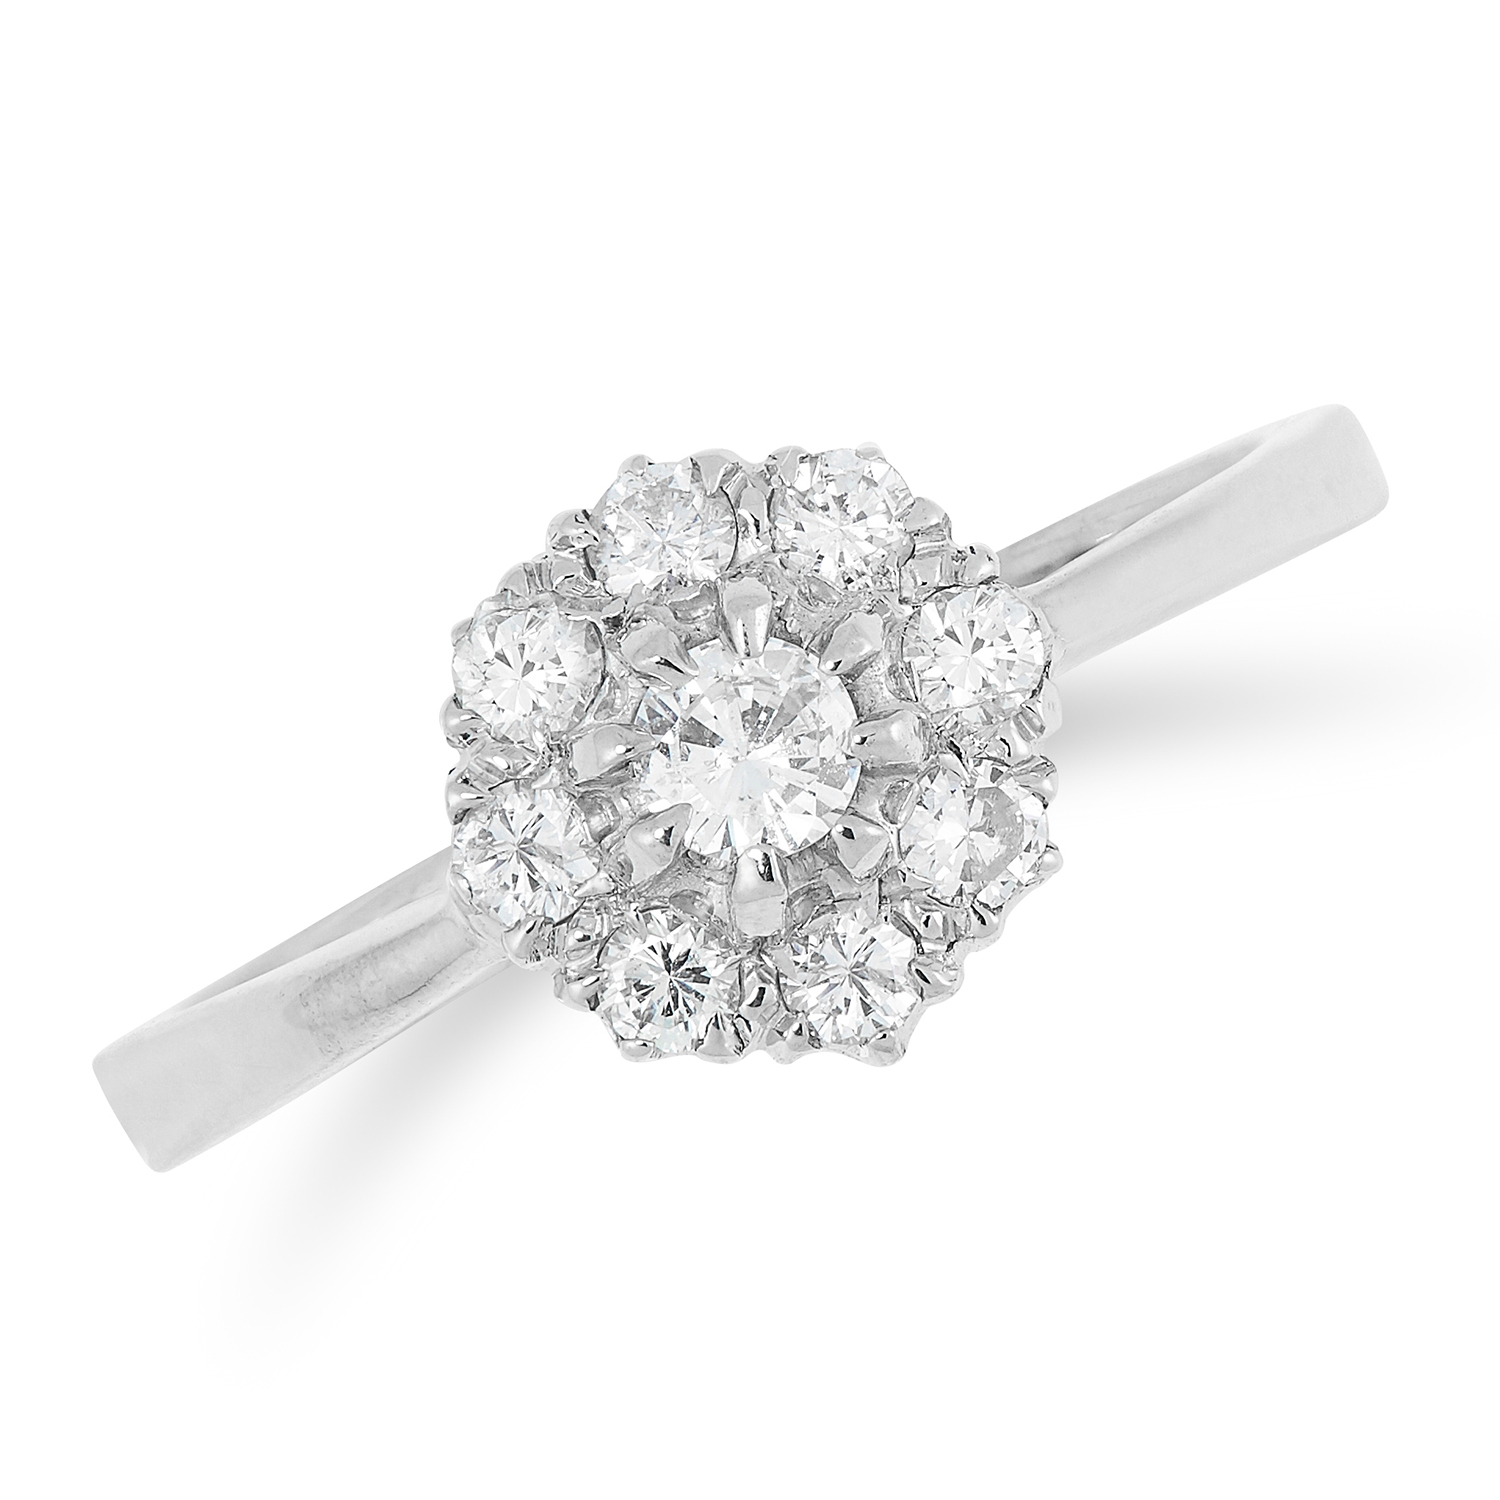 Los 29 - A DIAMOND CLUSTER RING set with a cluster of round cut diamonds, size N / 6.5, 2.9g.